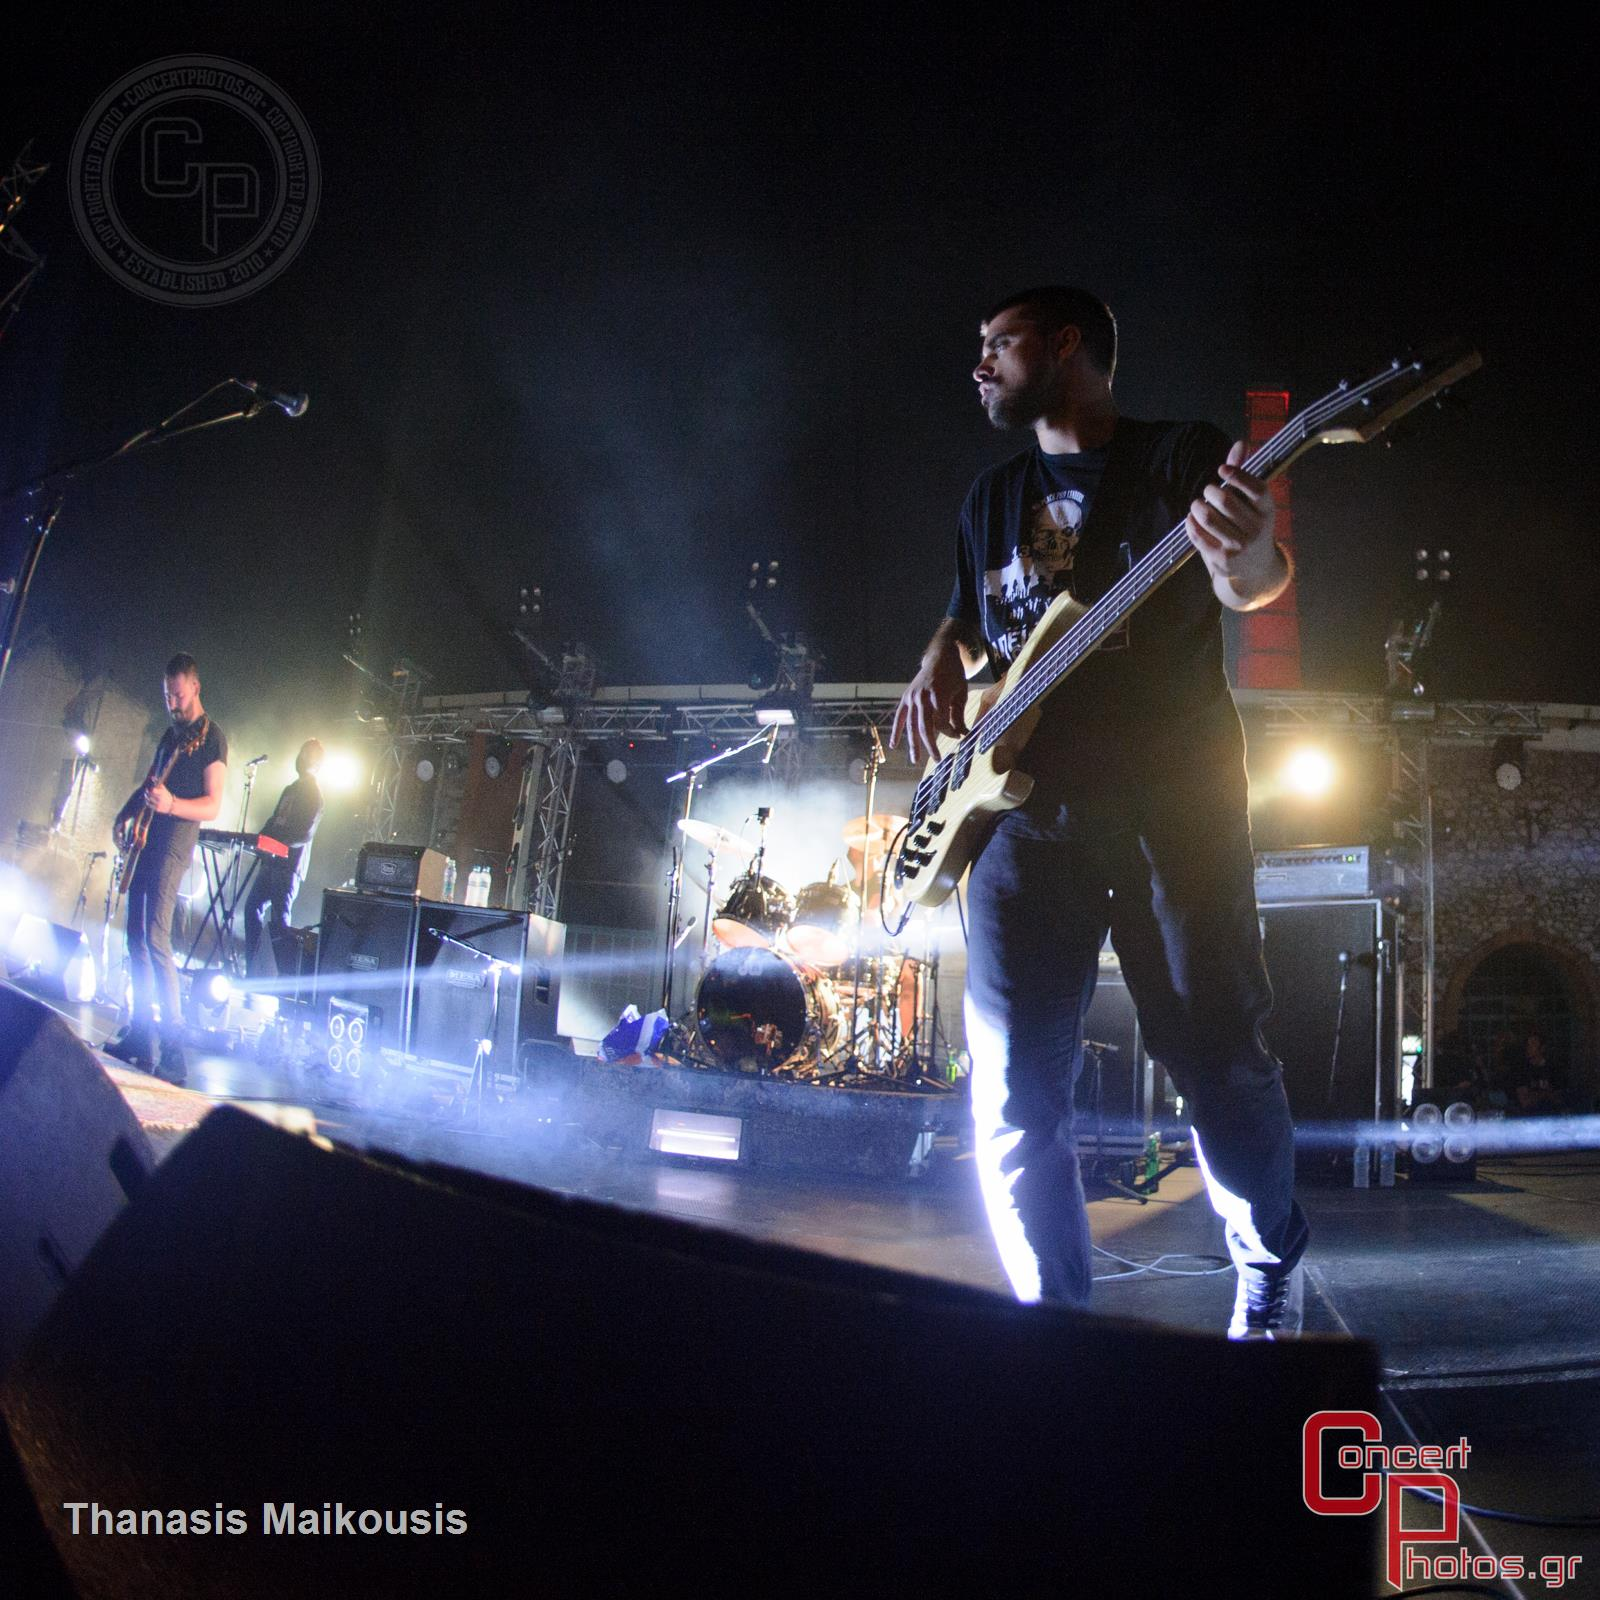 VIC-VIC-Technopolis photographer: Thanasis Maikousis - concertphotos_20150925_20_56_26